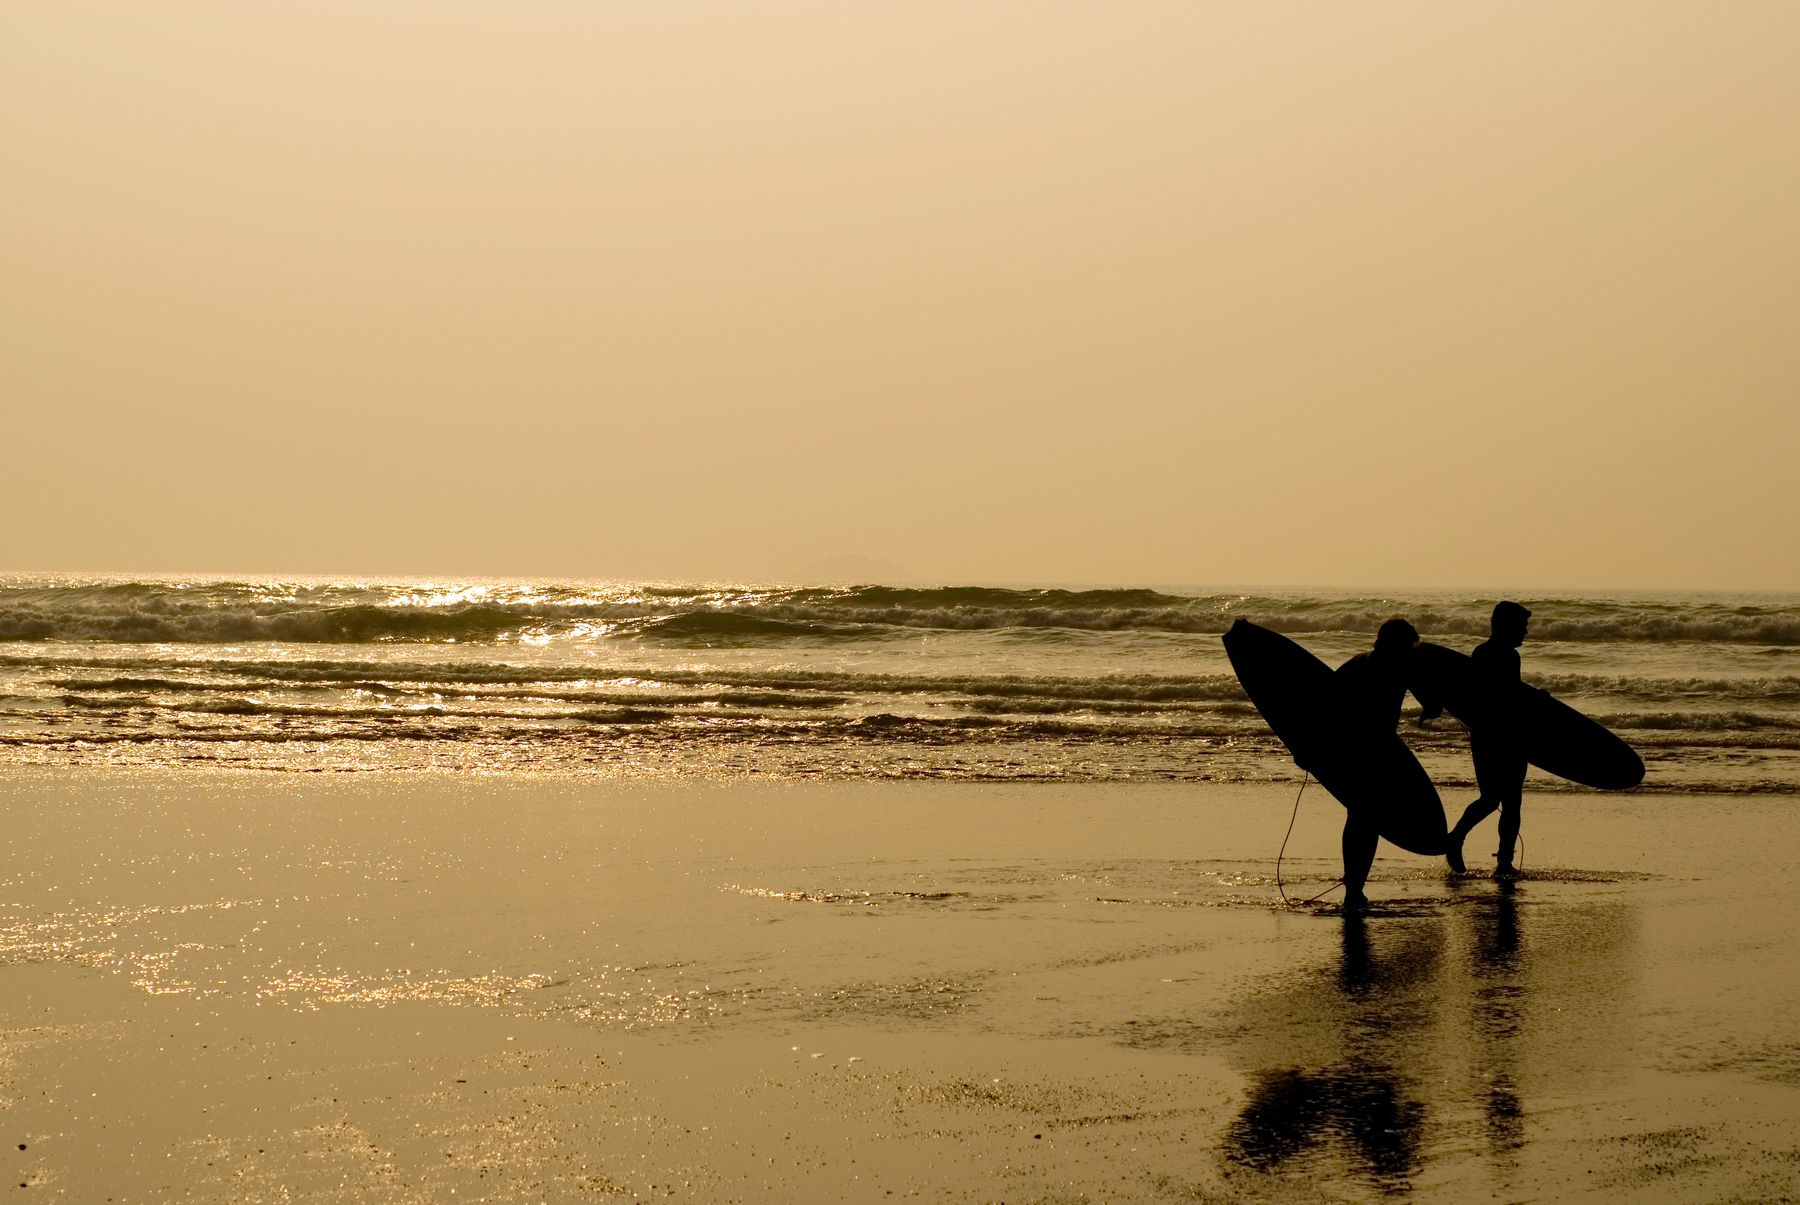 Surfers at sunset in Cornwall